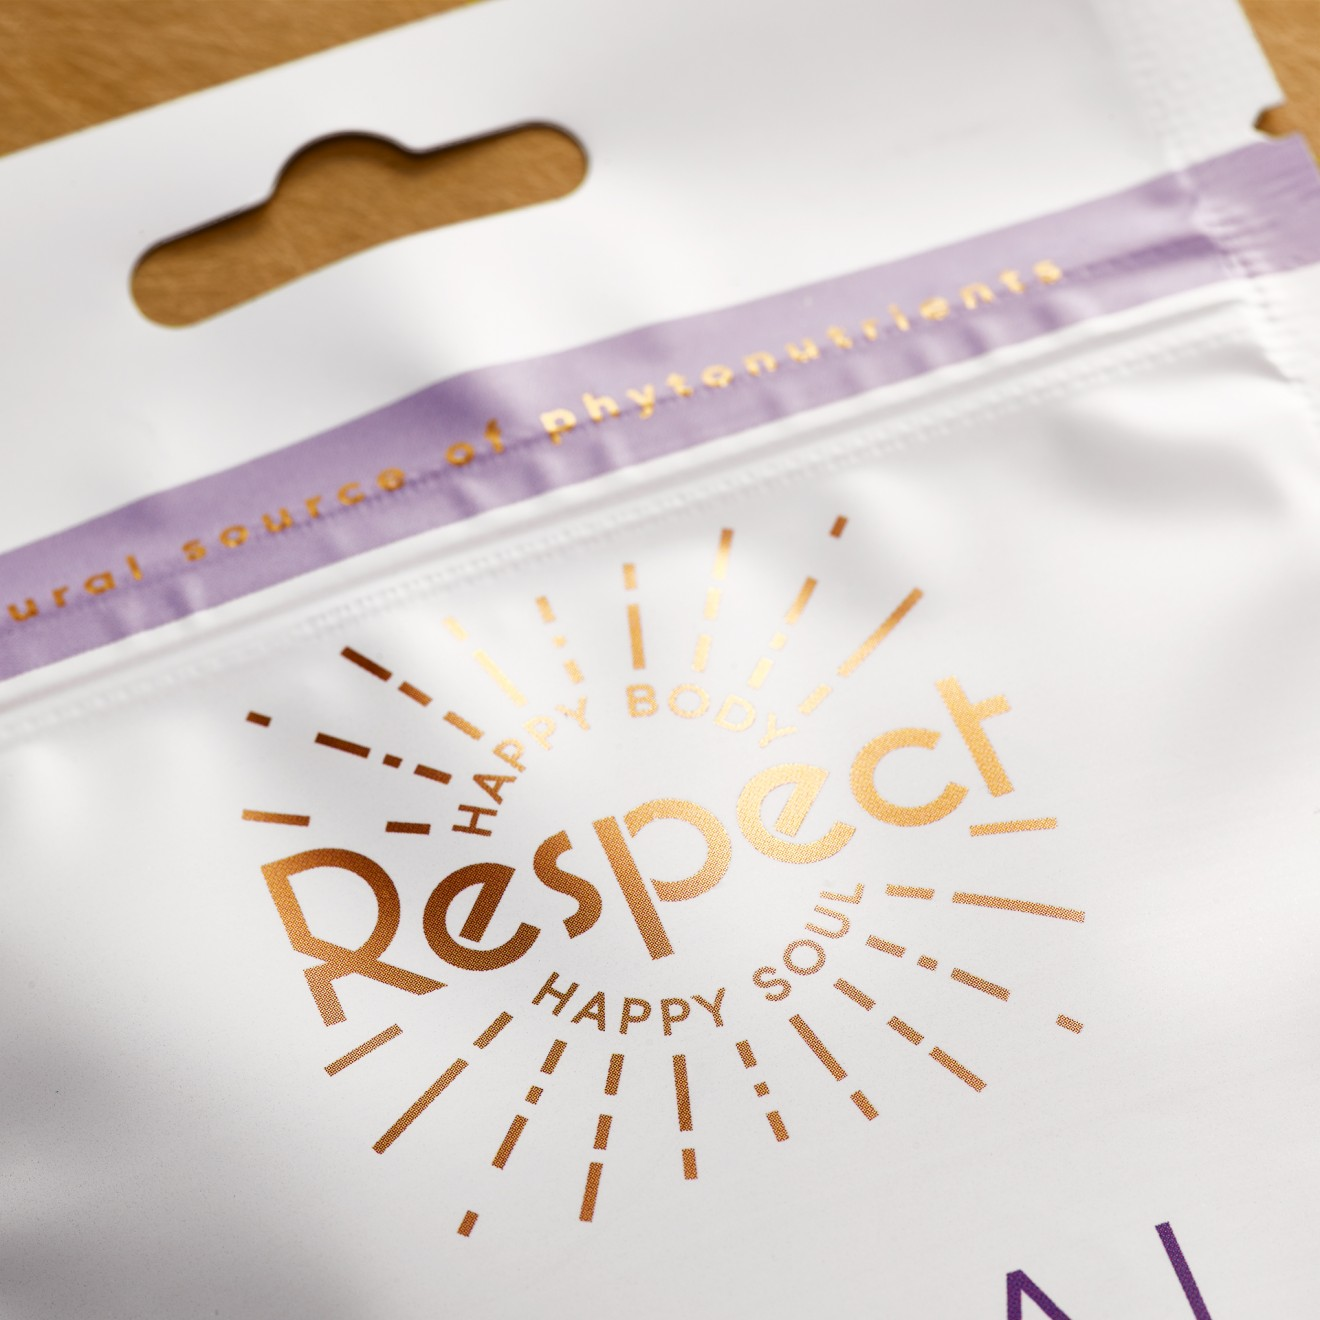 Quatre Mains package design - respect, foil, pouch